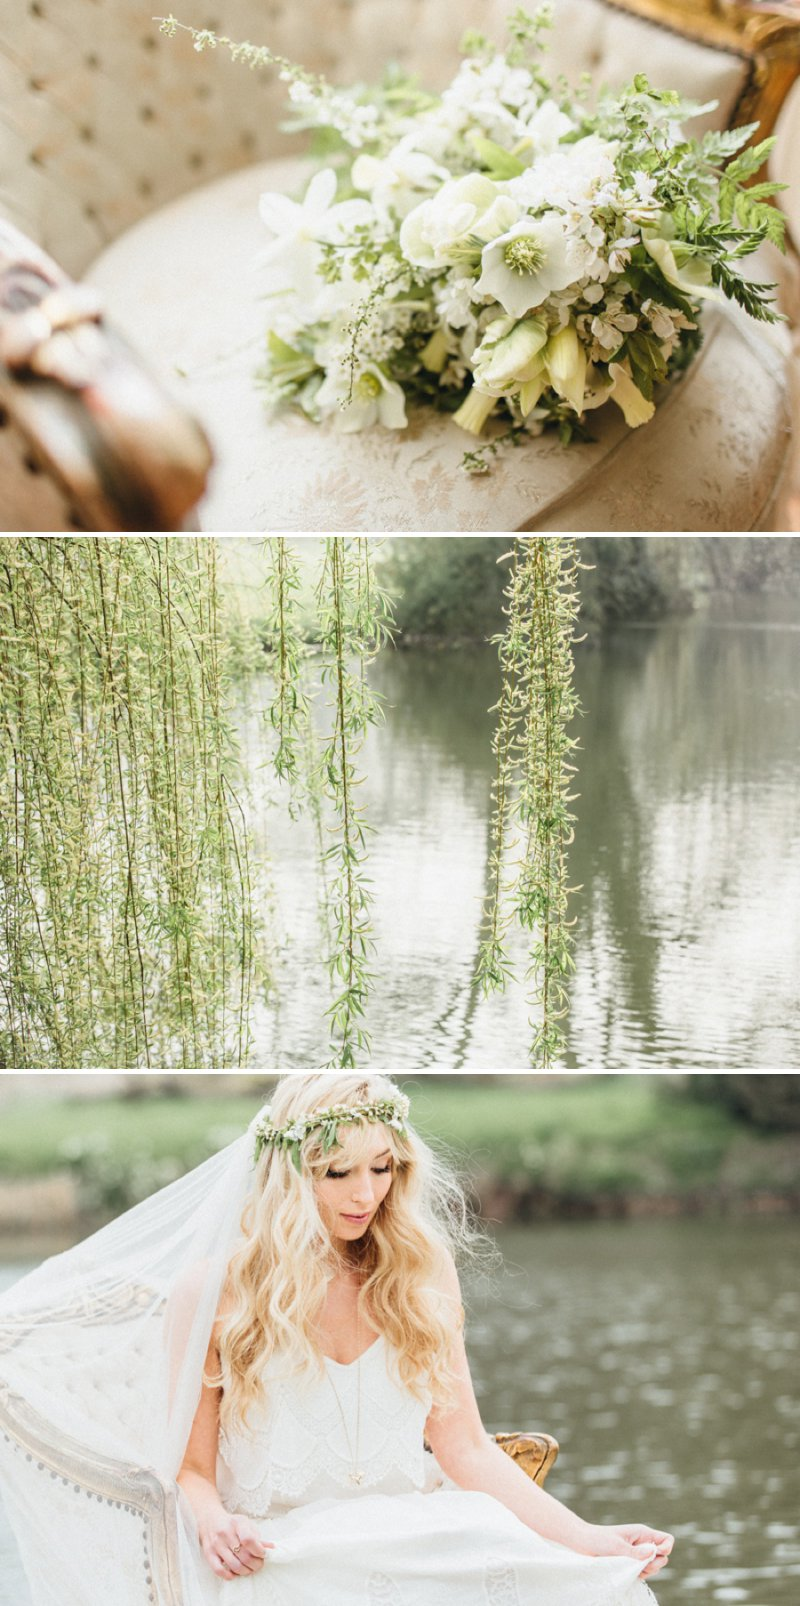 Rustic Bridal Shoot From Coco Venues And Katrina Otter Weddings And Events Inspired By The Promise Of Spring At Narborough Hall Gardens With Dresses From Rue De Seine Bridal With Images From Rebecca Goddard 2